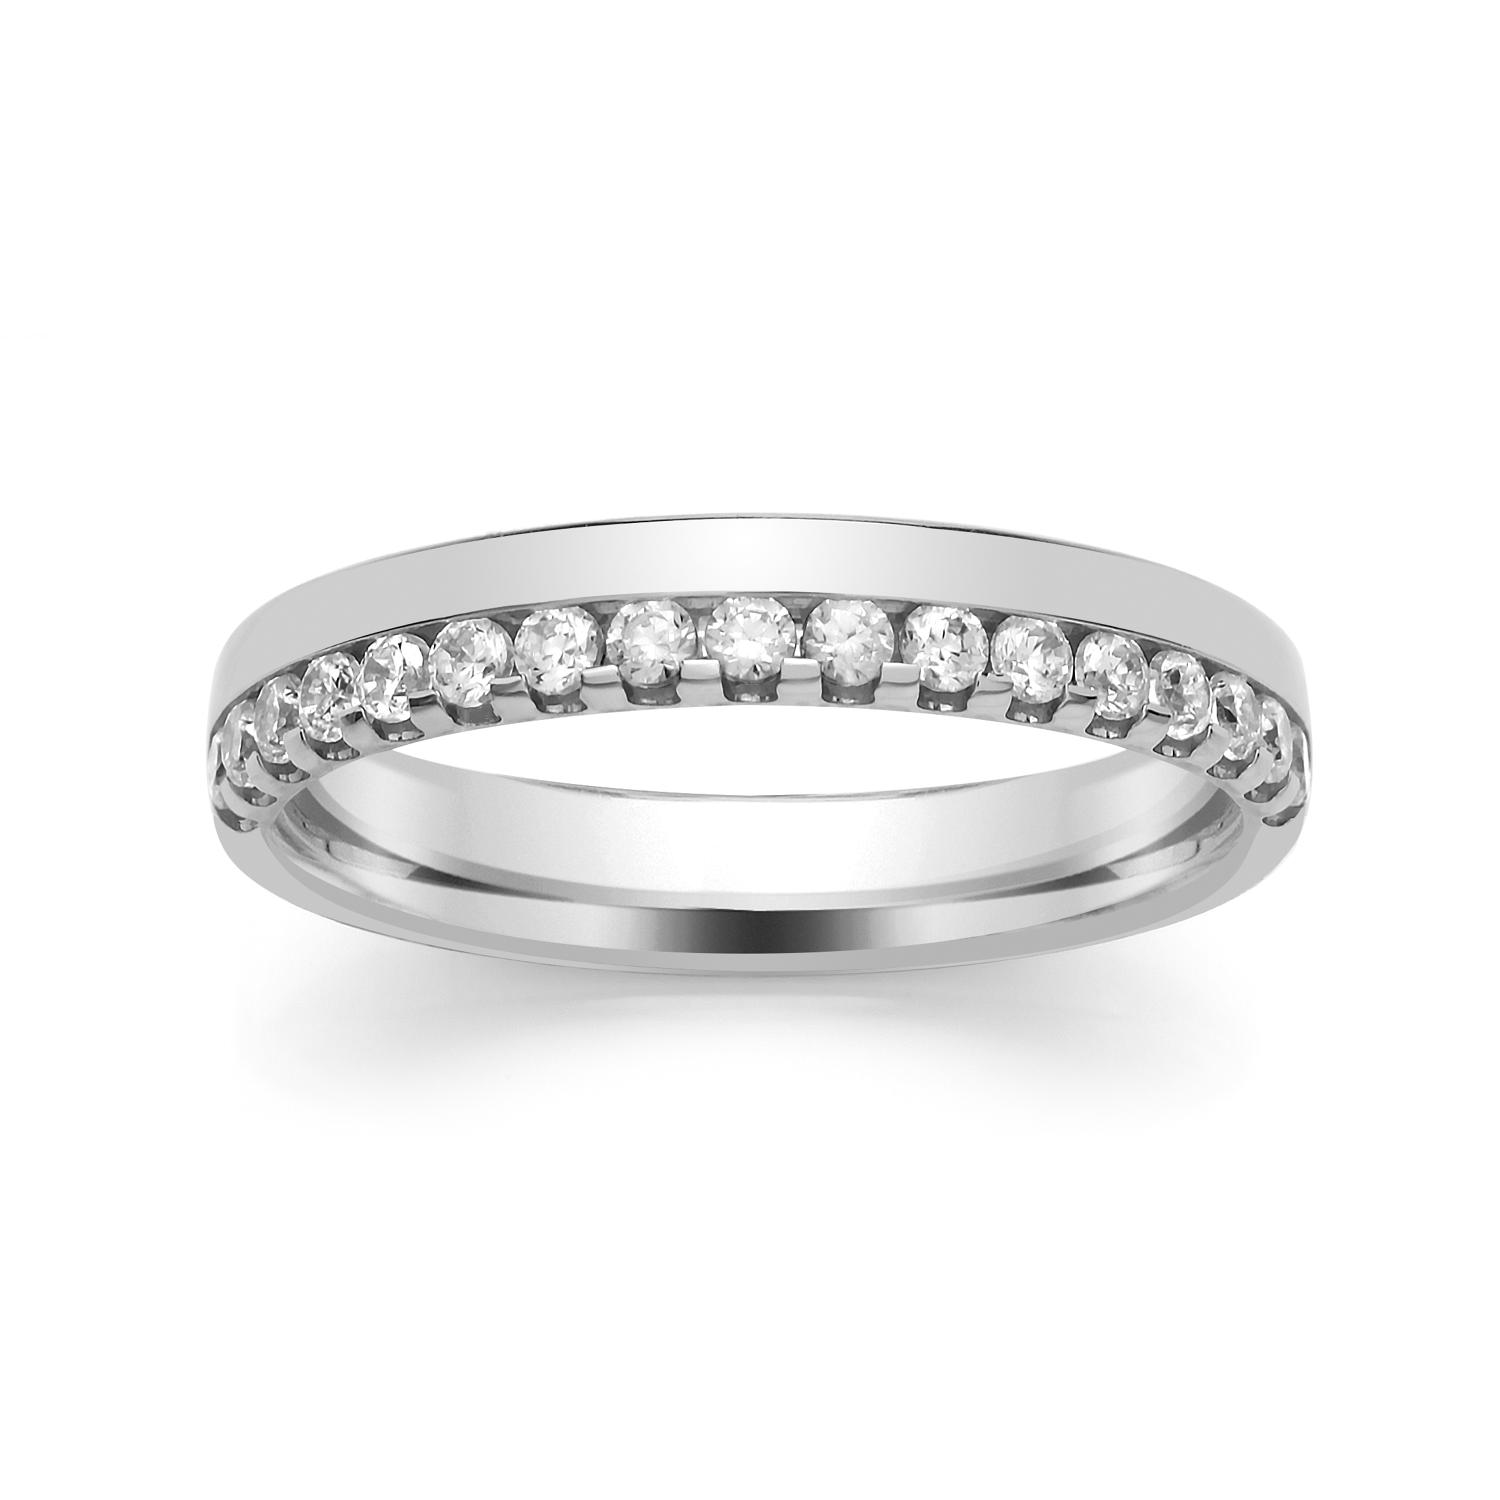 3.5mm Offset Ball Claw Set Diamond Ring